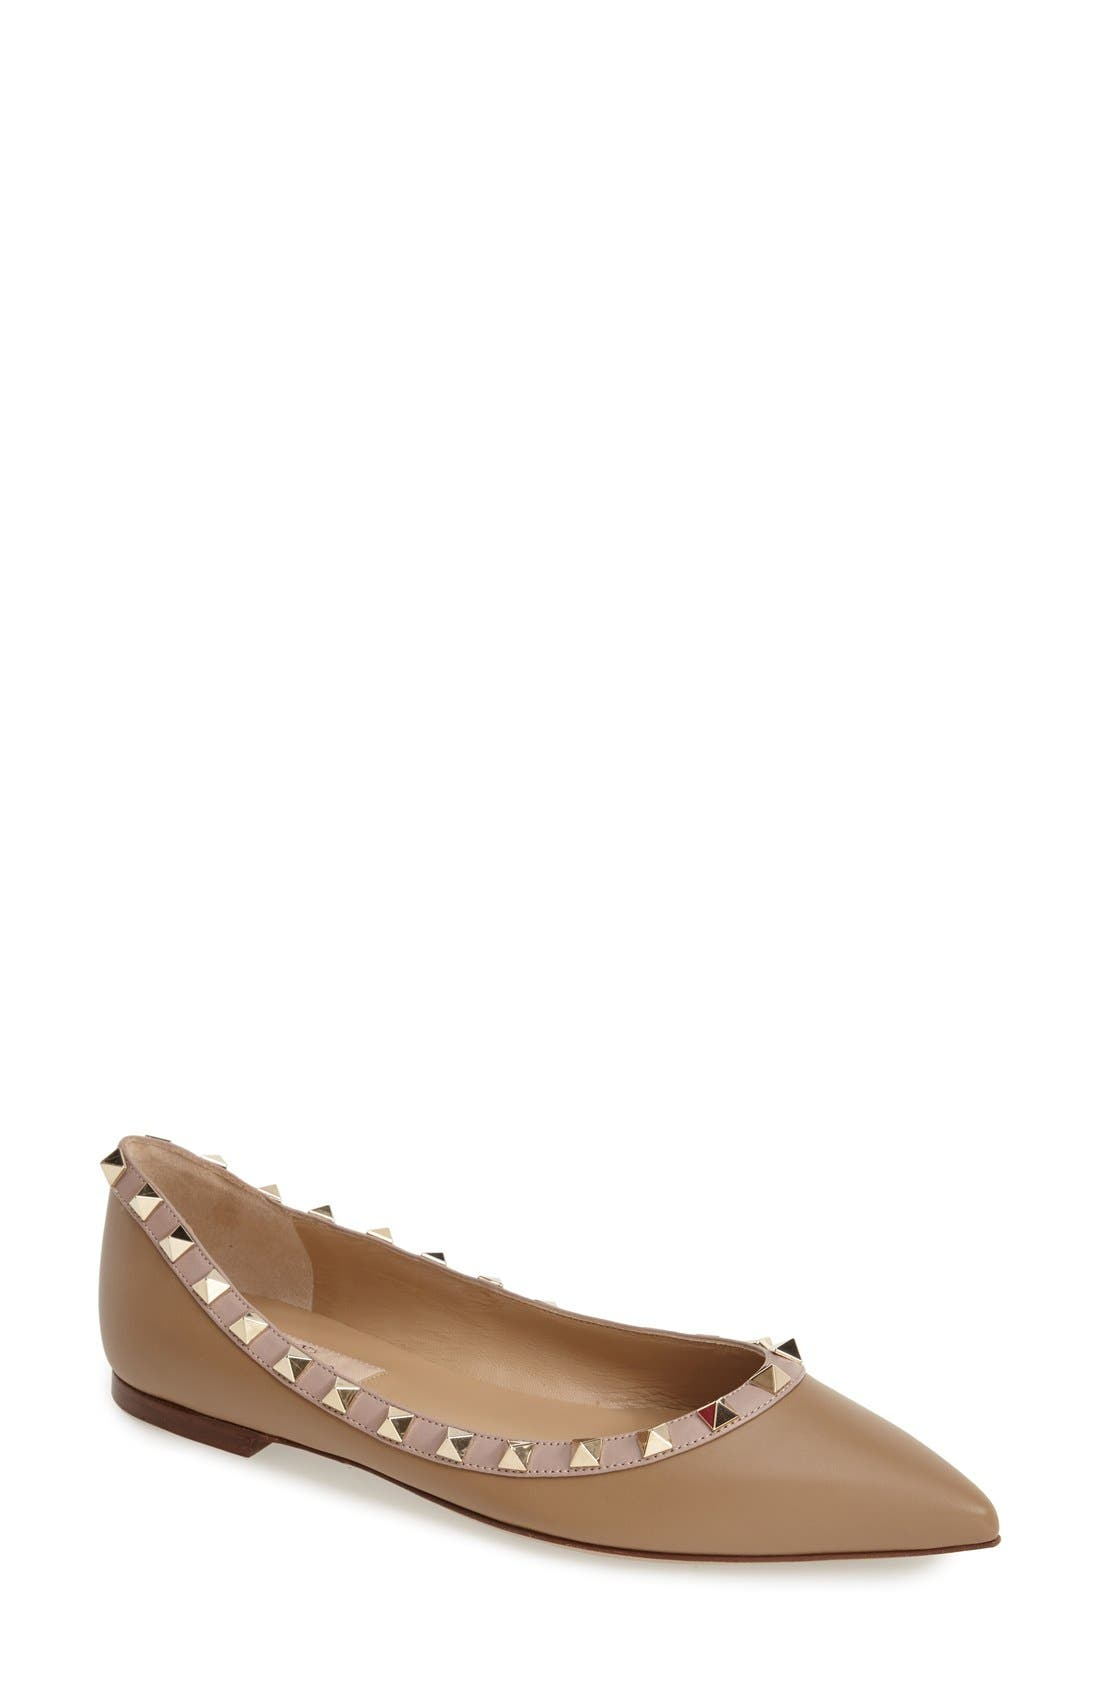 'Rockstud' Flat, Main, color, 200